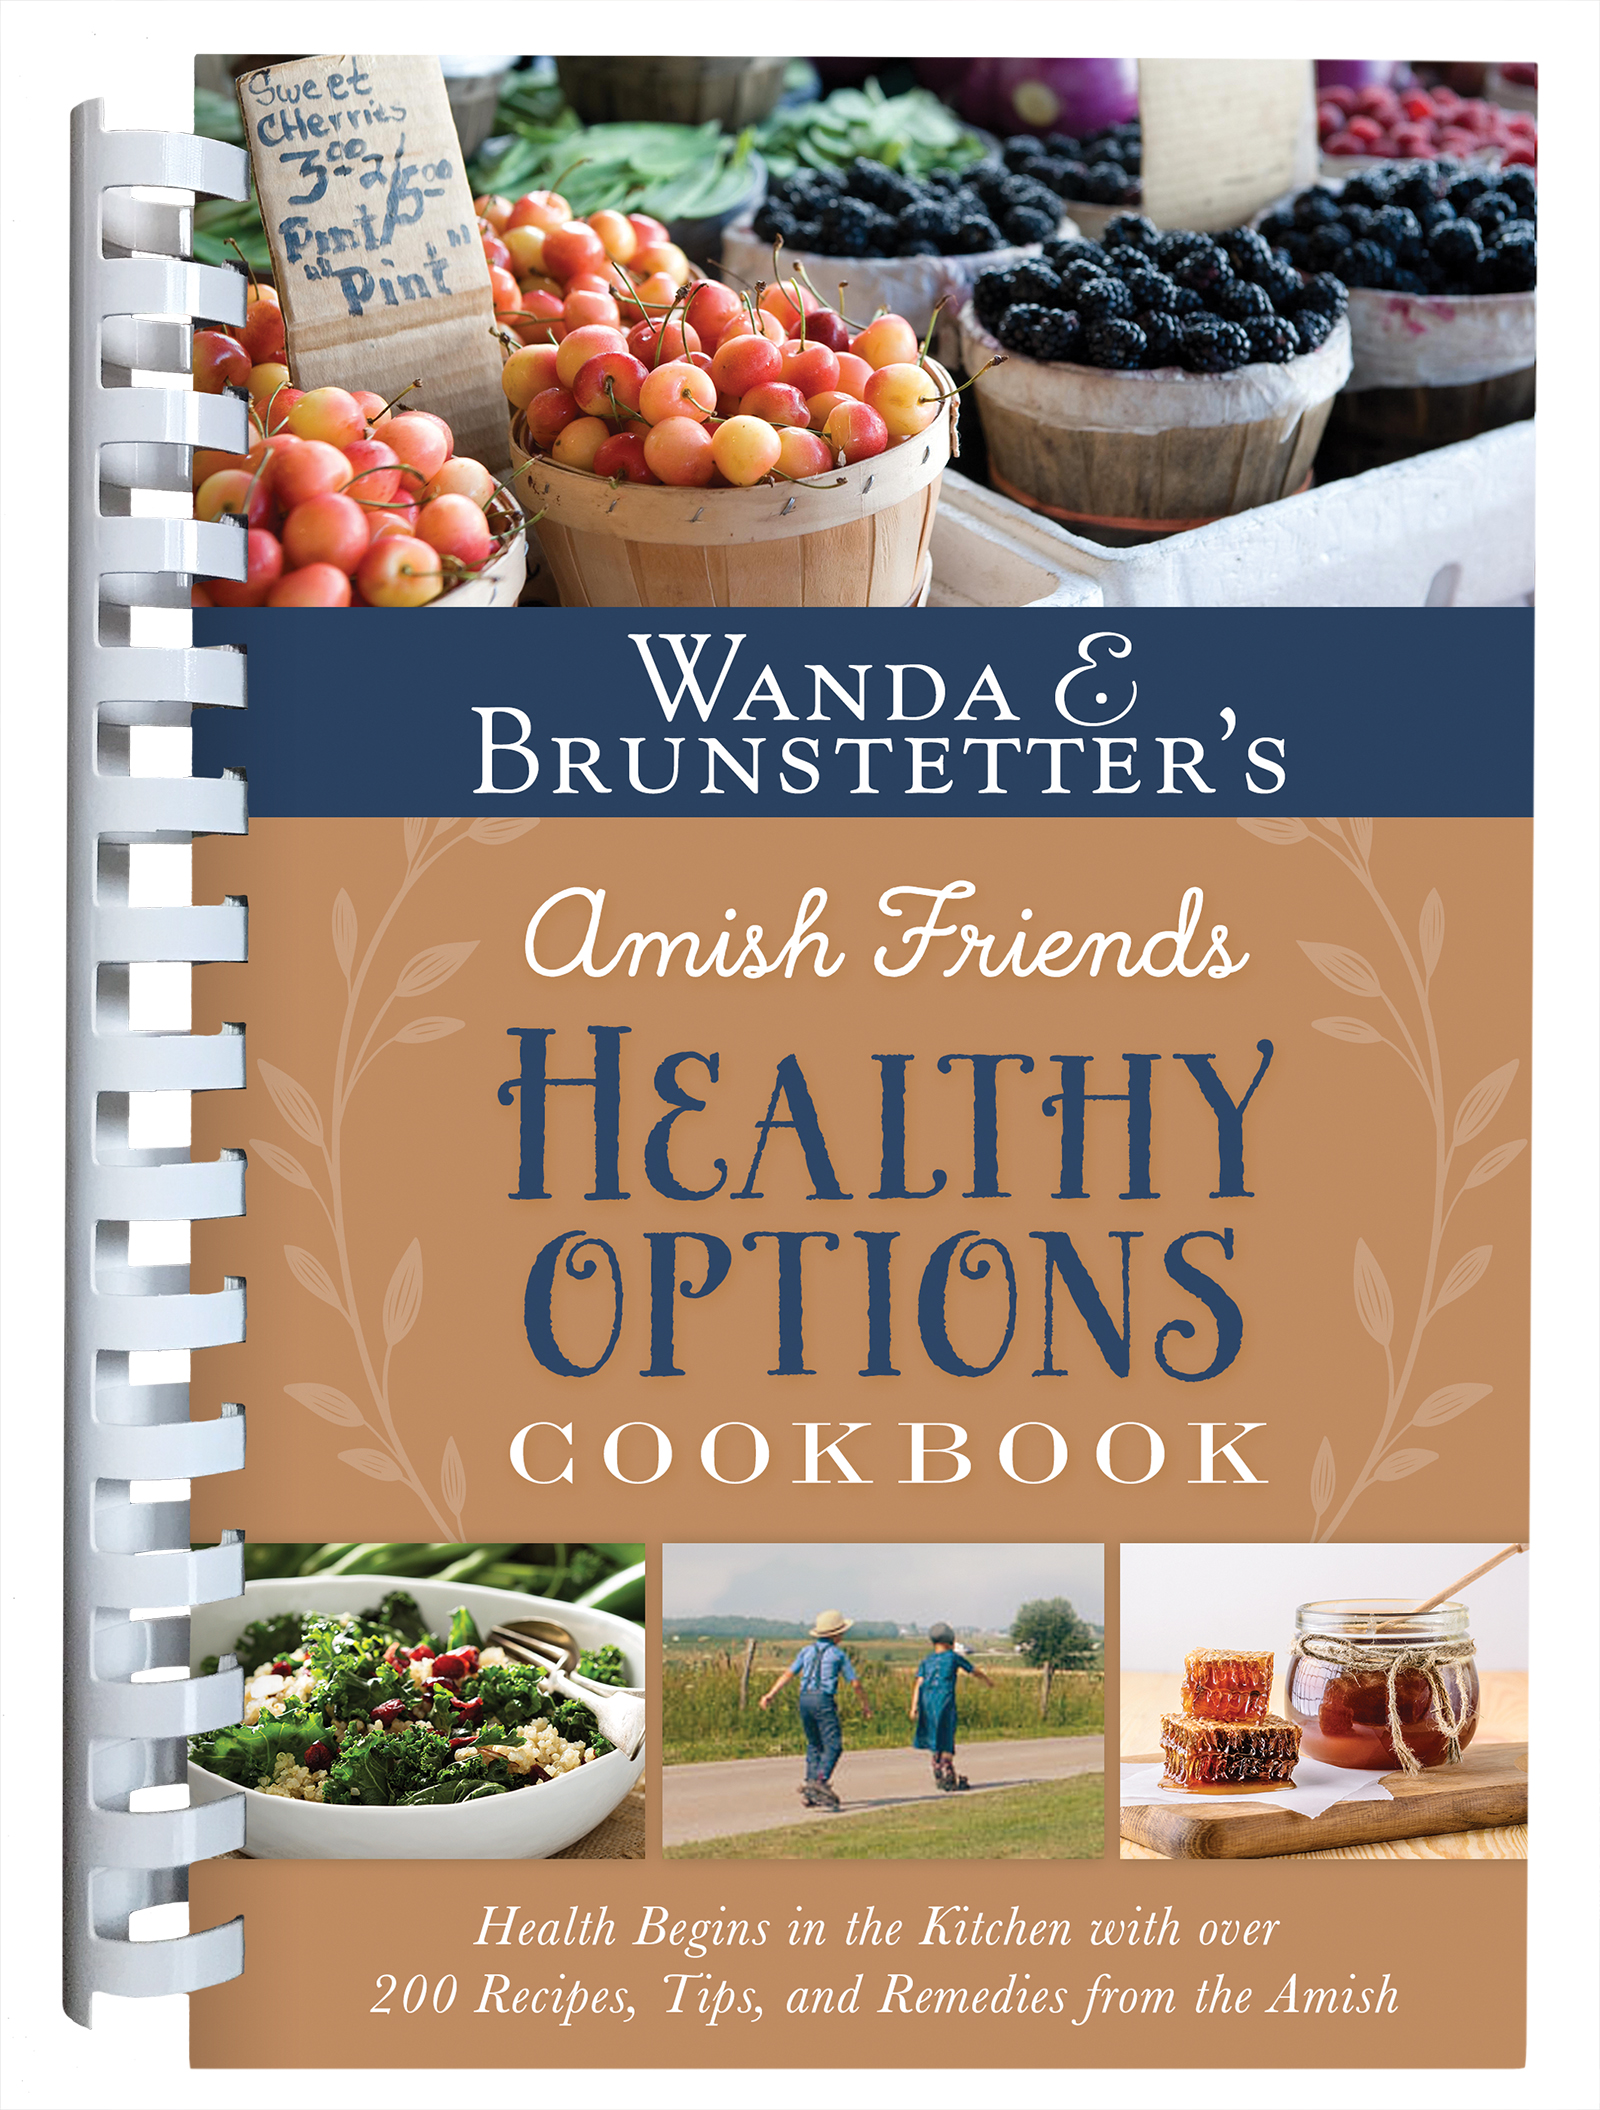 Wanda E. Brunstetter's Amish Friends Healthy Options Cookbook: Health Begins in the Kitchen with over 200 Recipes, Tips, and Remedies from the Amish